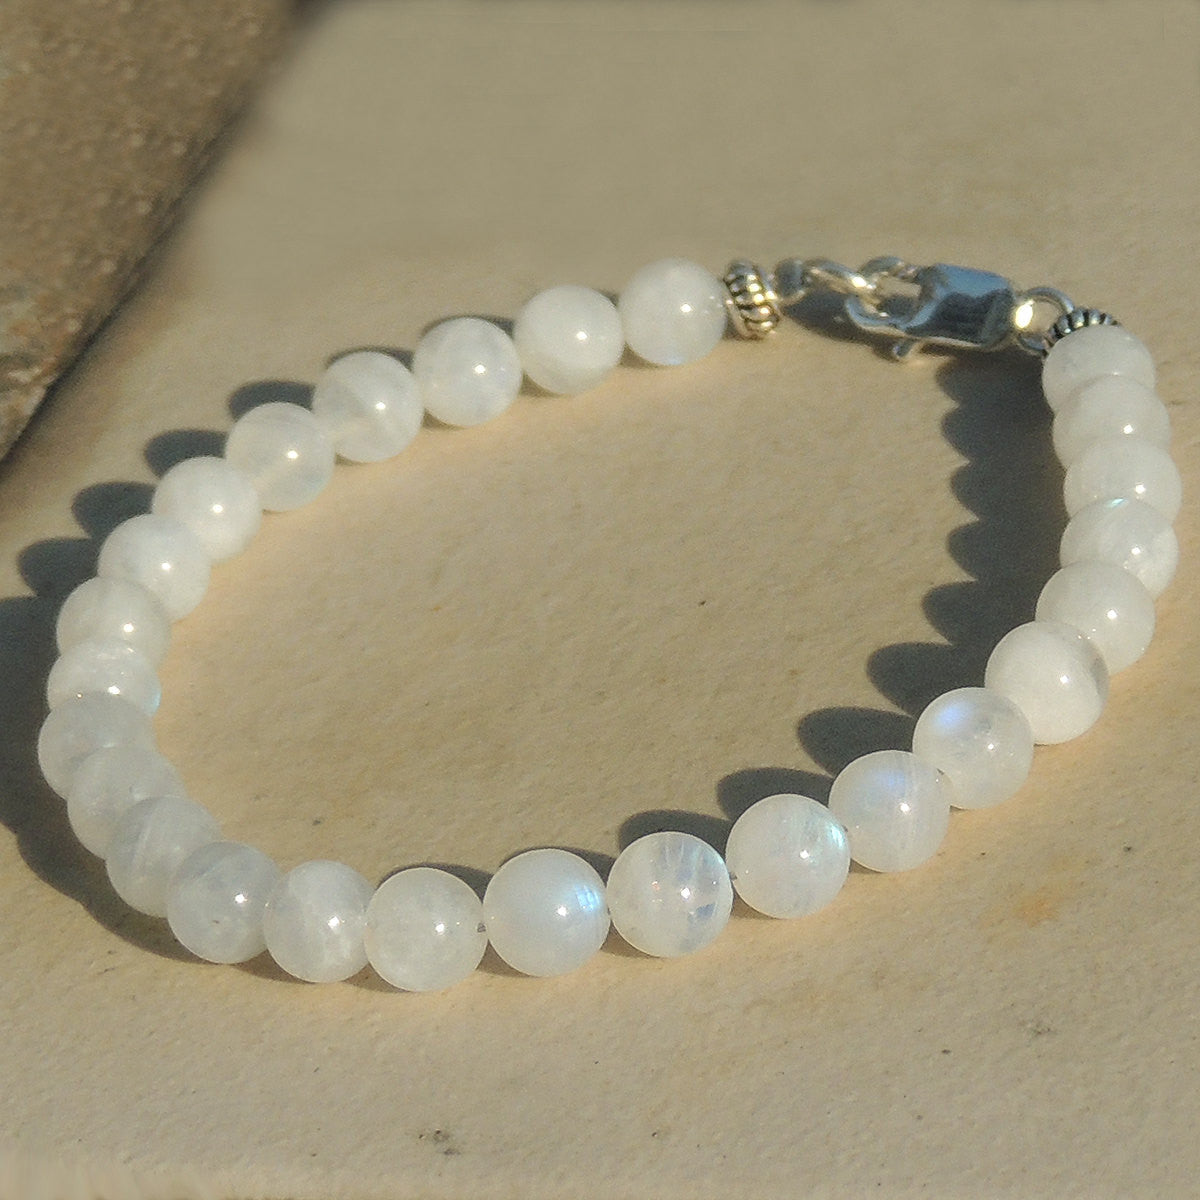 6mm Moonstone Healing Gemstone Bracelet with S925 Sterling Silver Spacer Beads & Clasp - Handmade by Gem & Silver BR383